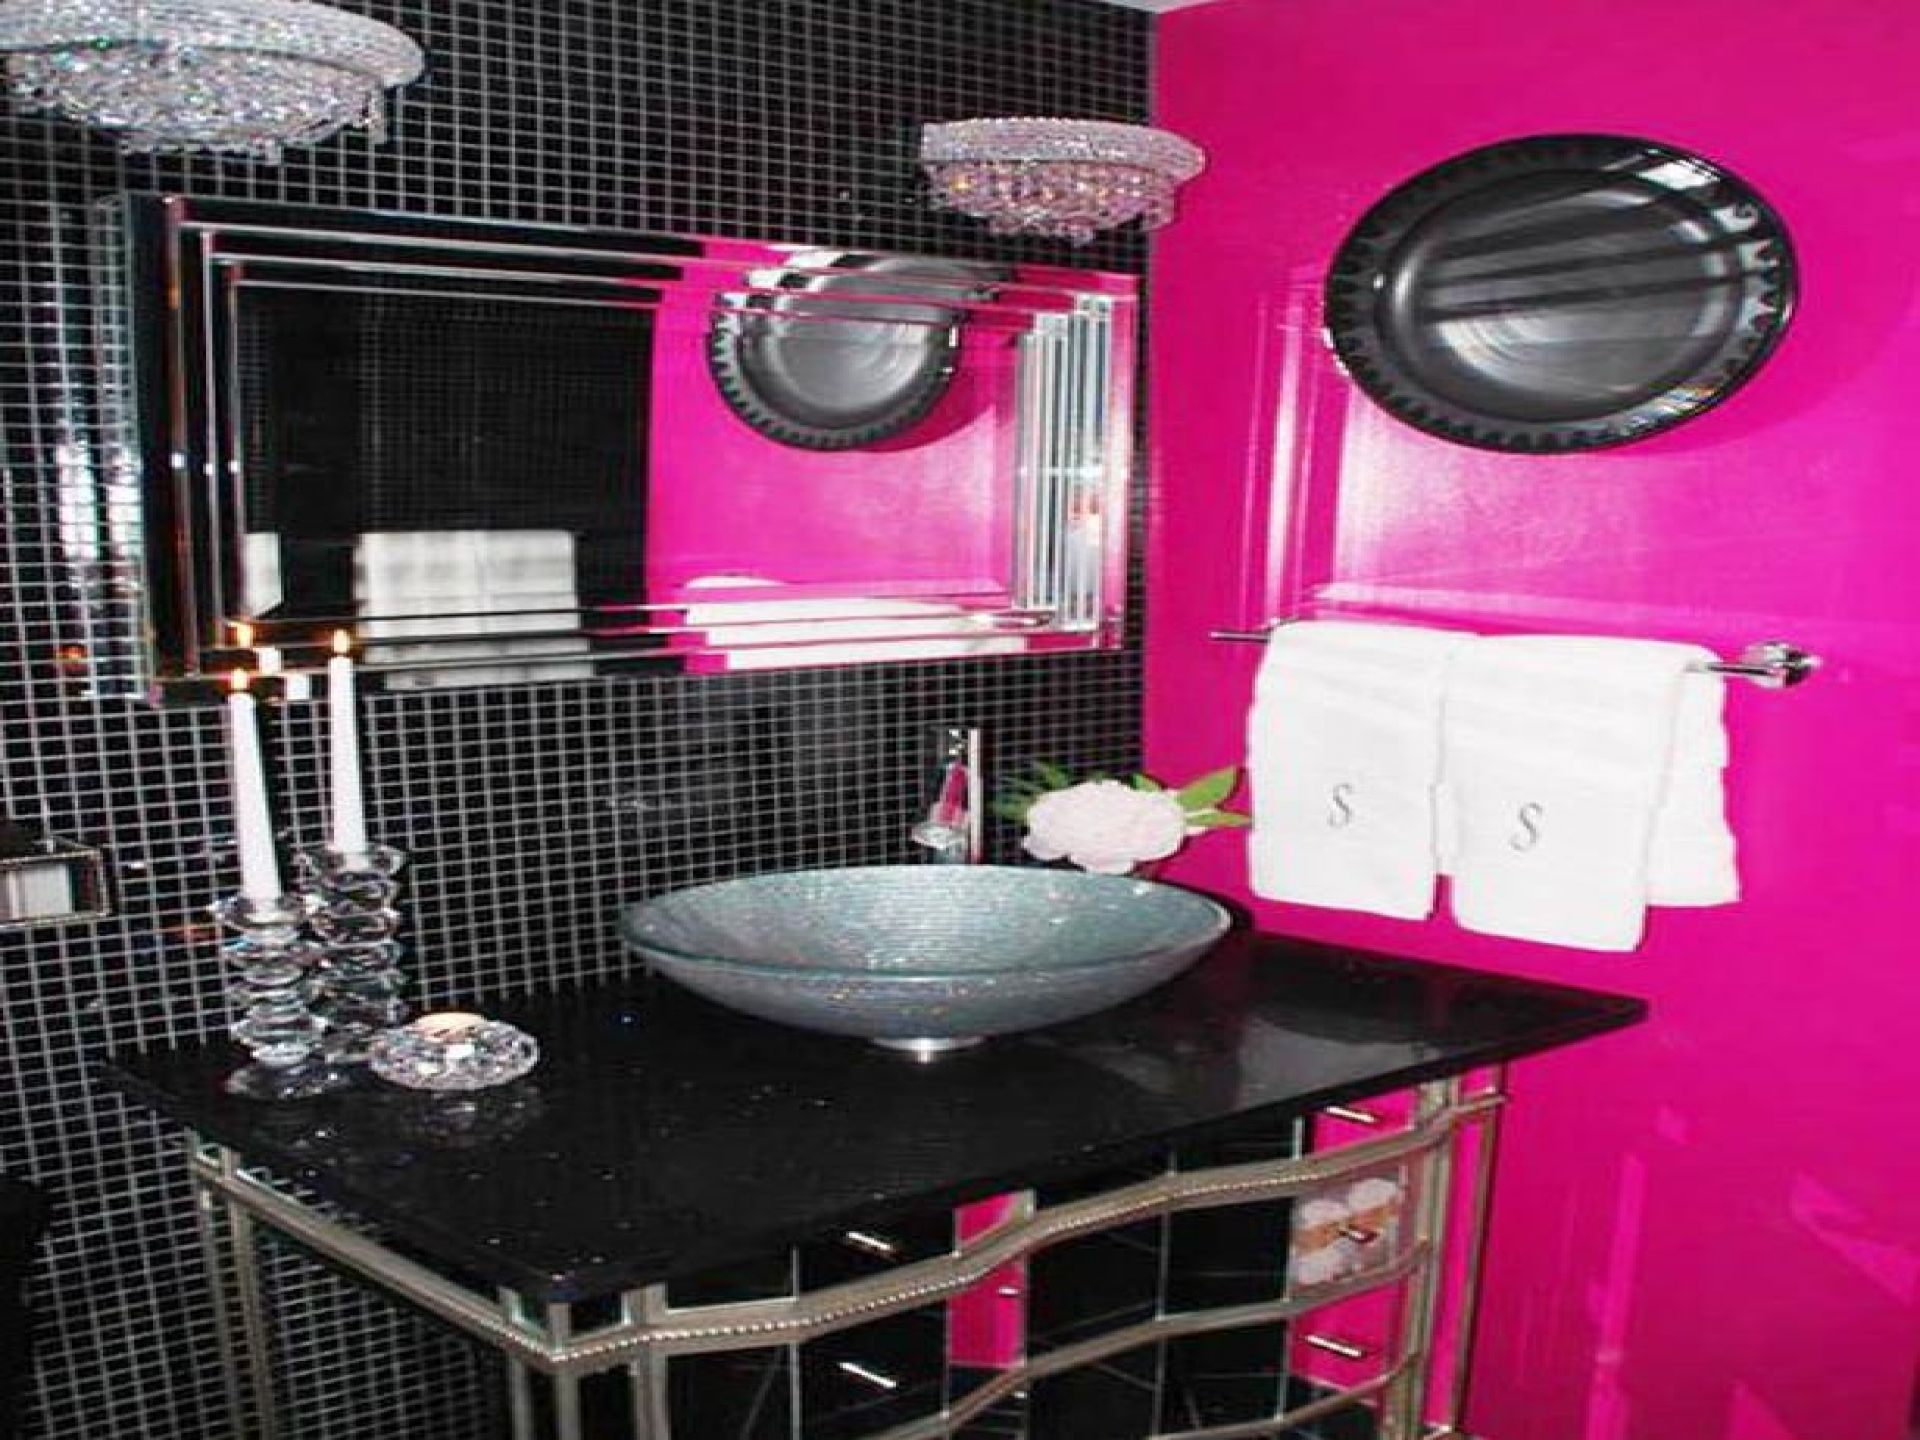 Antique Bathroom Accessories With Pink Http Bathroomdesignsideas Org